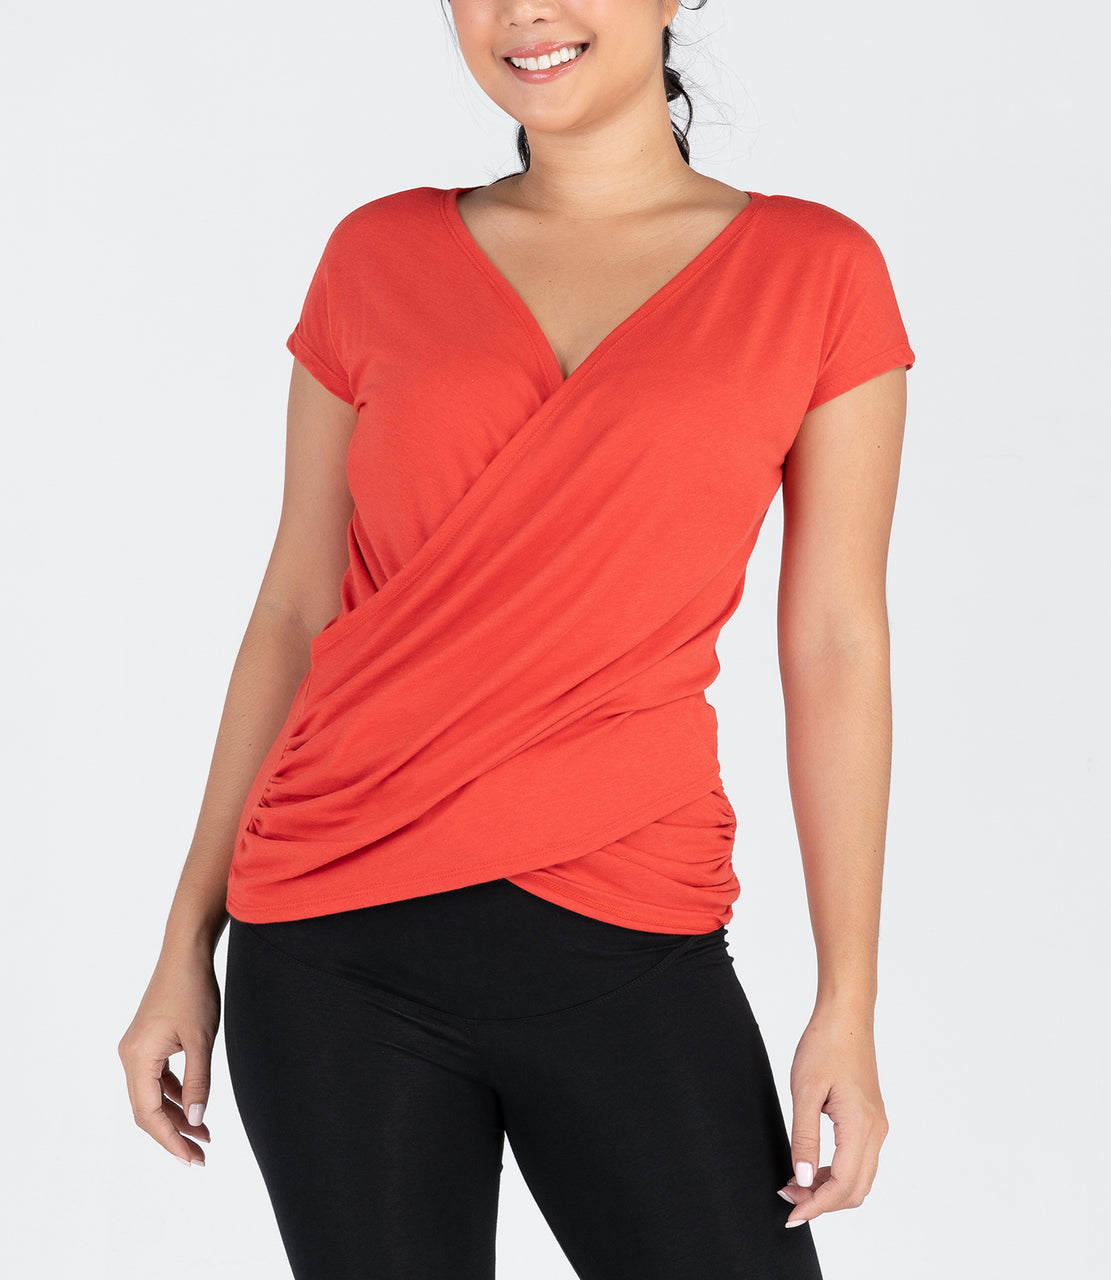 Mia Nursing Top